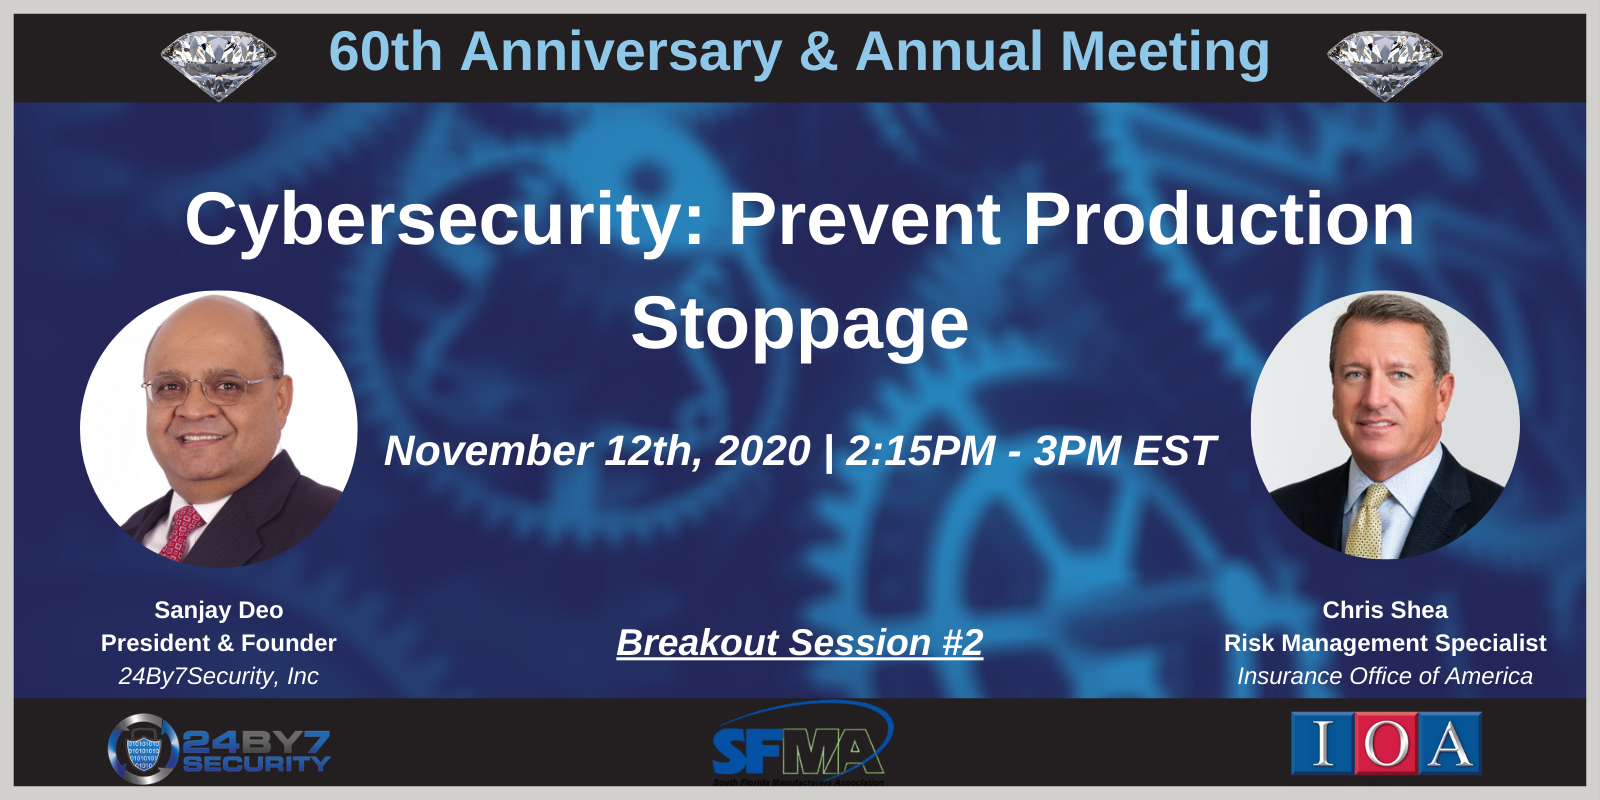 Cybersecurity Prevent Production Stoppage